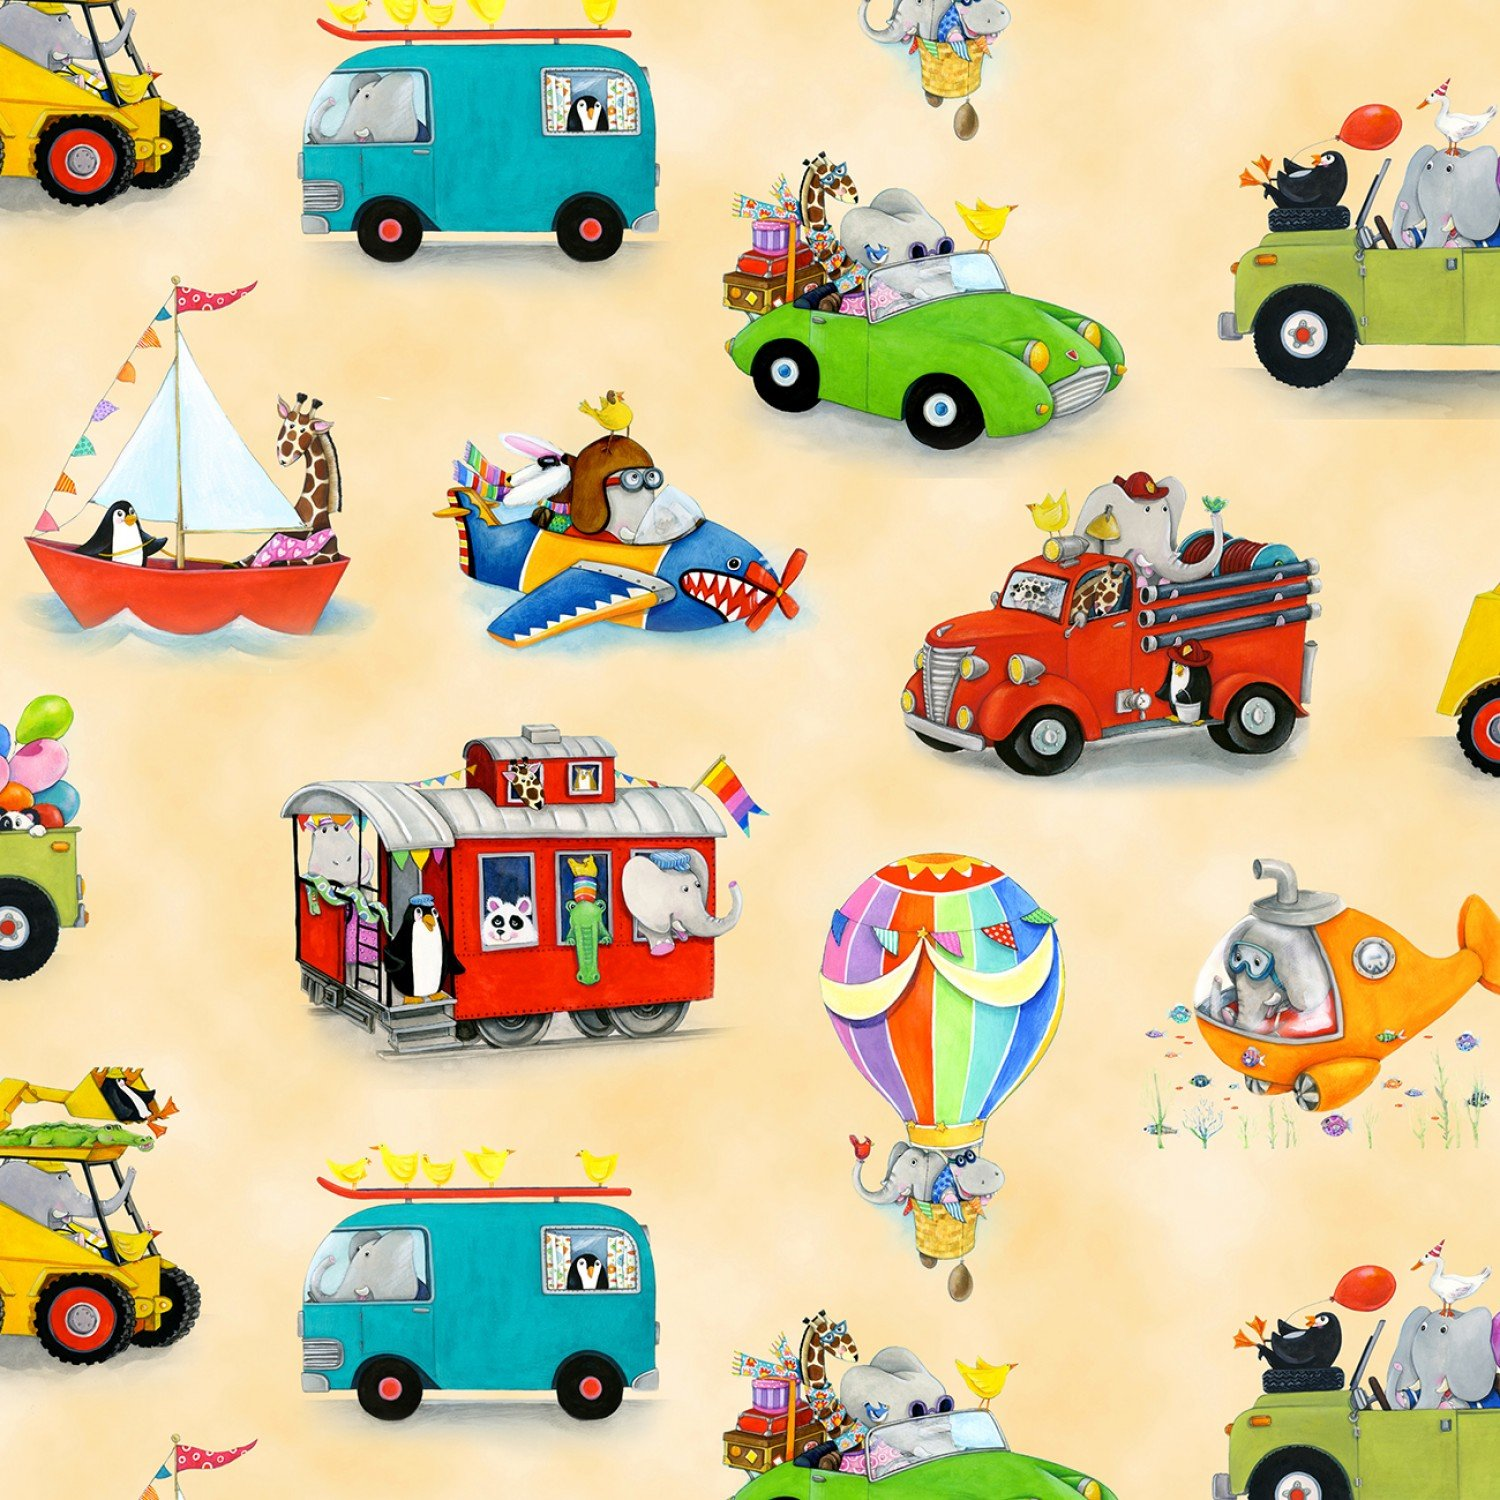 On The Go Children's Cotton Fabric Yardage 44-45 Inches Wide